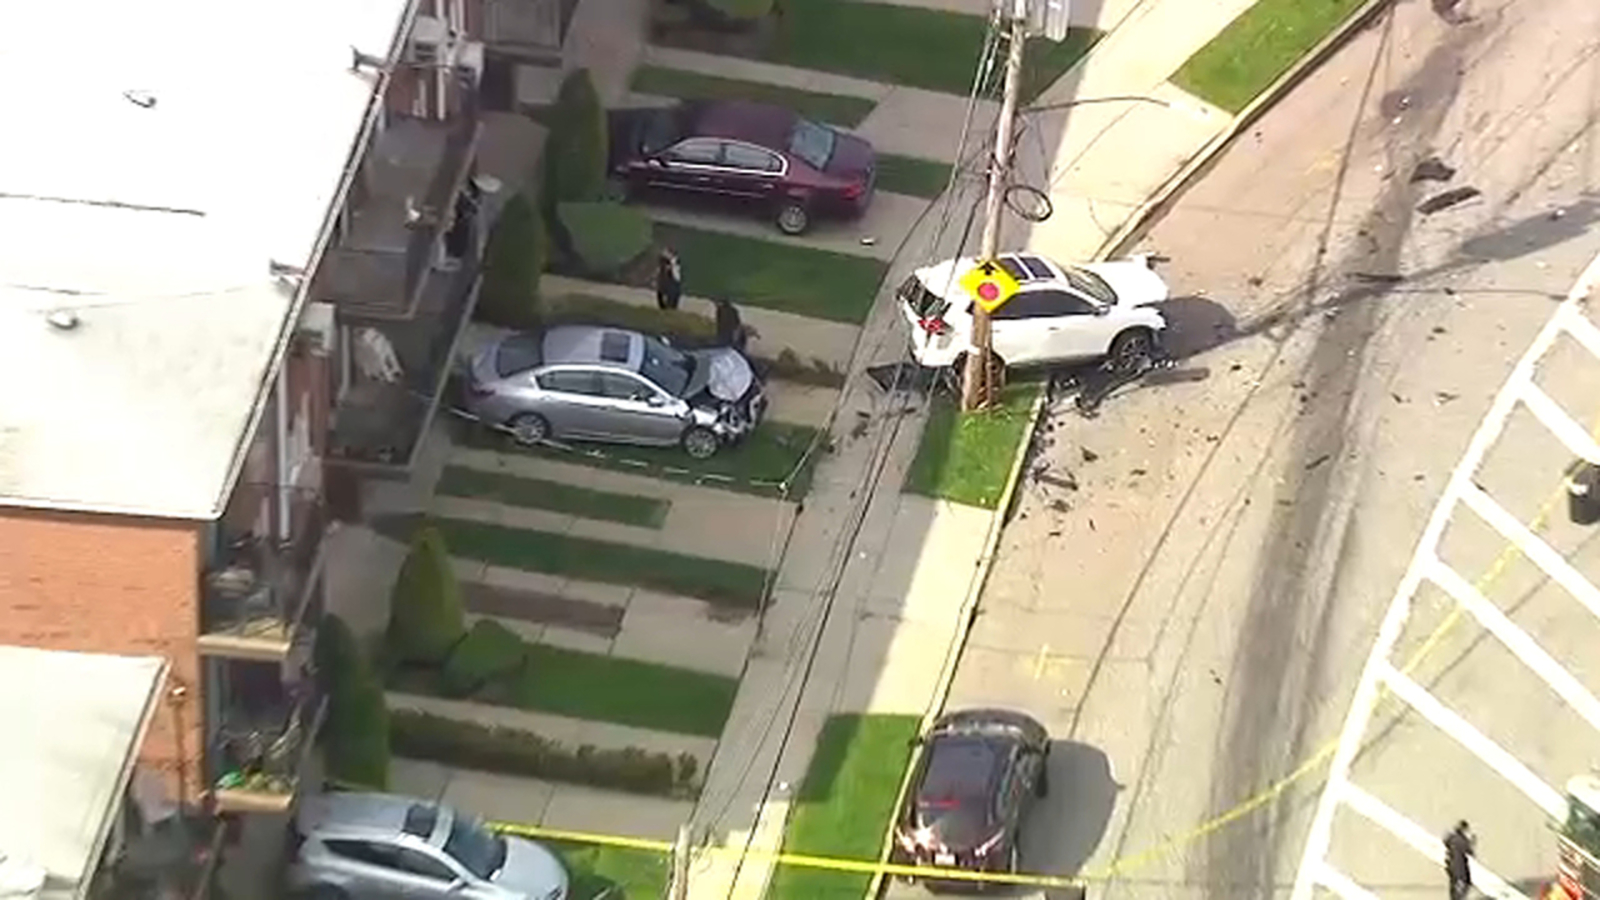 6-year-old boy killed when car slams into parked vehicle in Canarsie